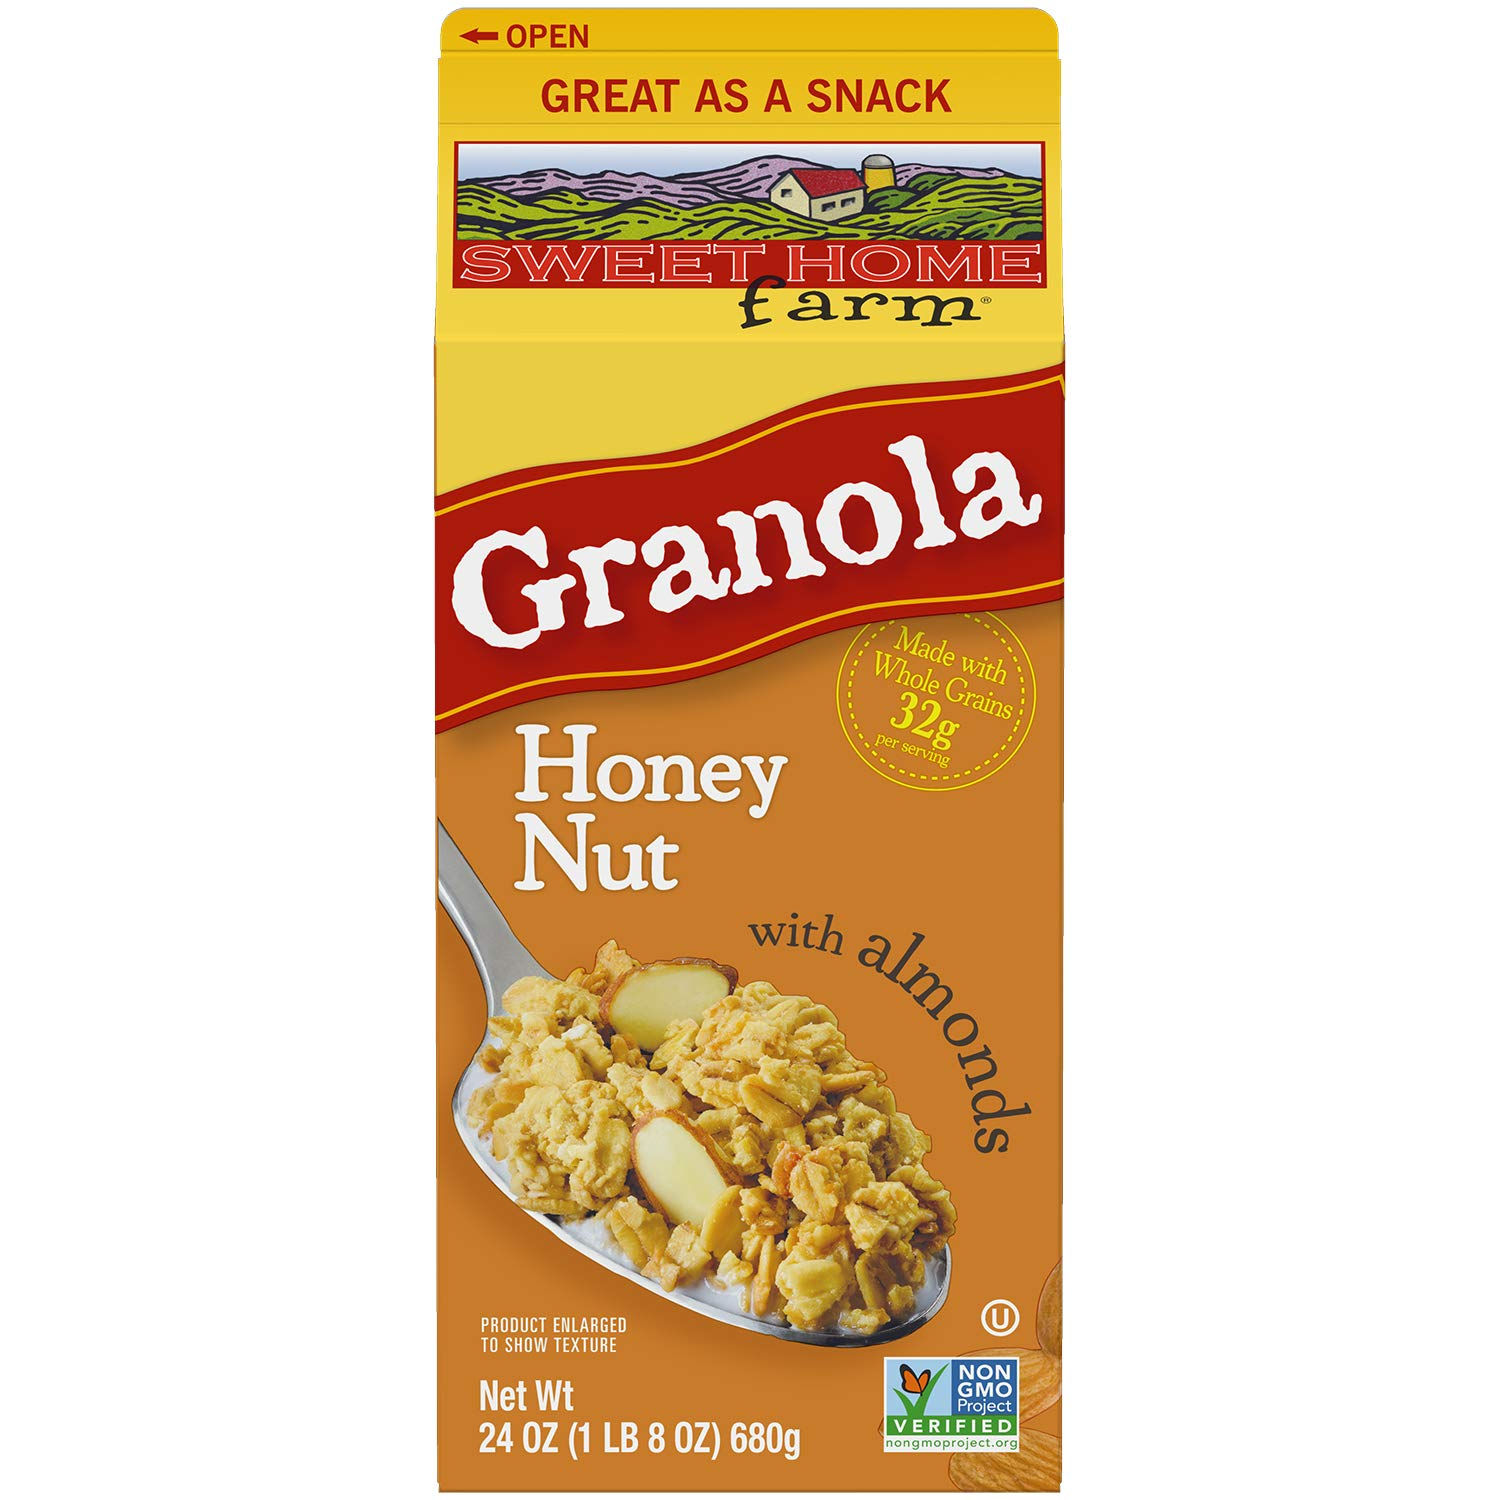 Sweet Home Farm Honey Nut with Almonds Granola, Made with Whole Grain, Non-GMO Project Verified, Kosher, Vegan, 24 Oz Recyclable Carton (Pack of 8)